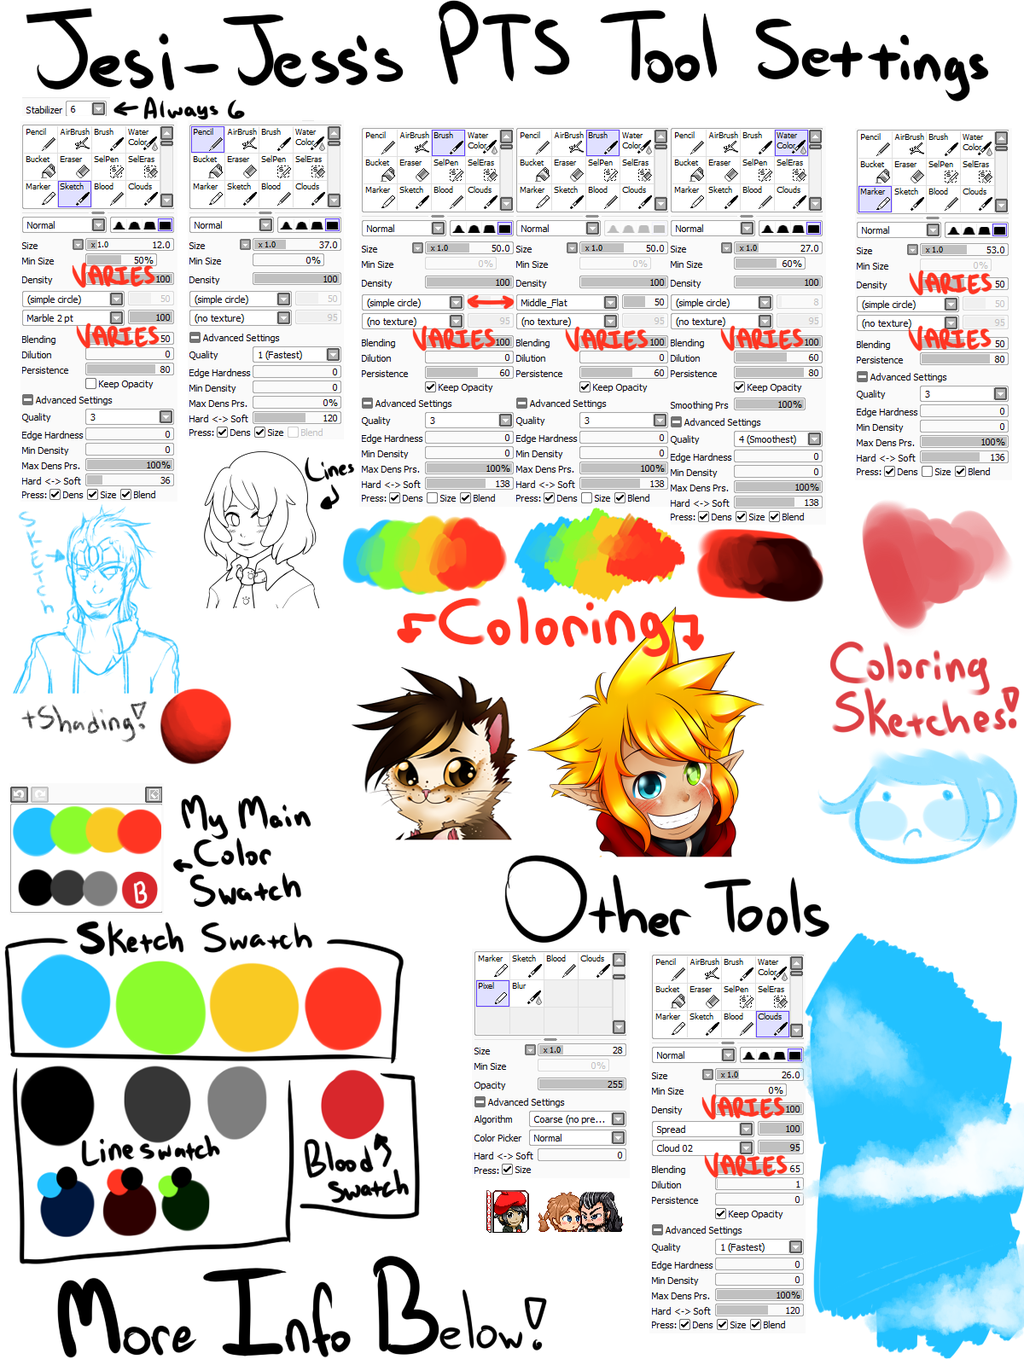 Paint Tool Sai Tools and Swatches v2 by Jesi-Jess deviantart